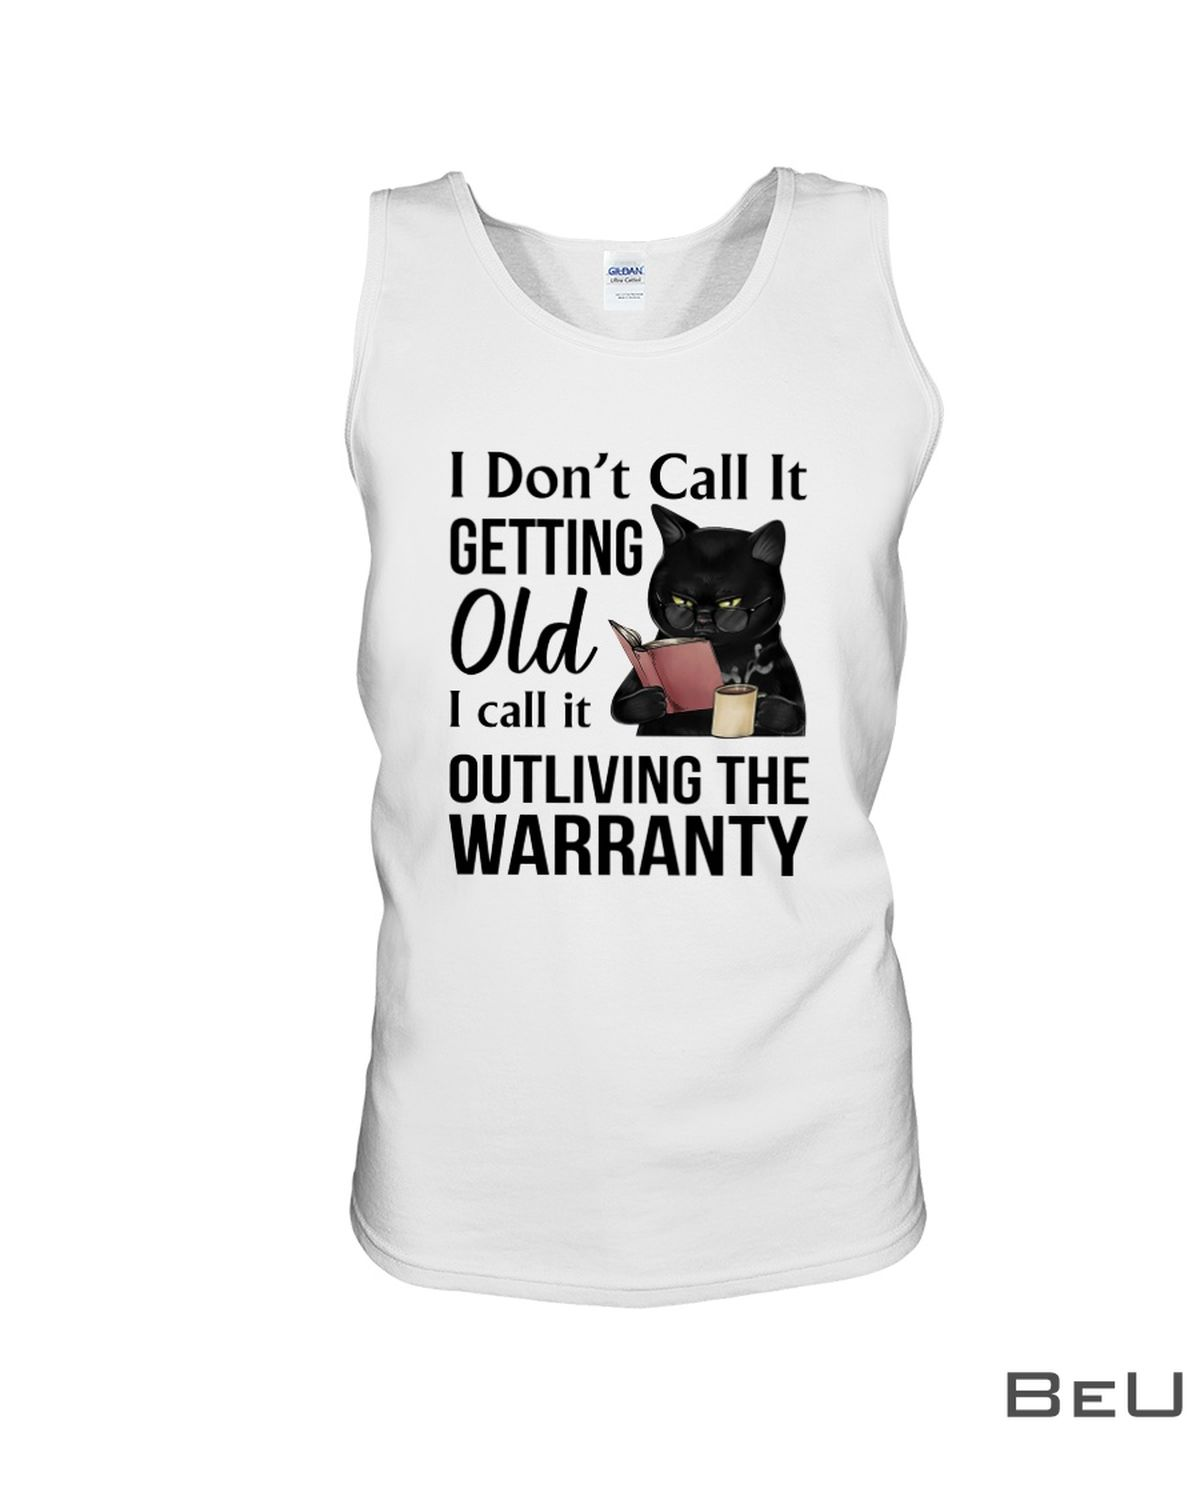 I Don't Call It Getting Old I Call It Outliving The Warranty Shirtc